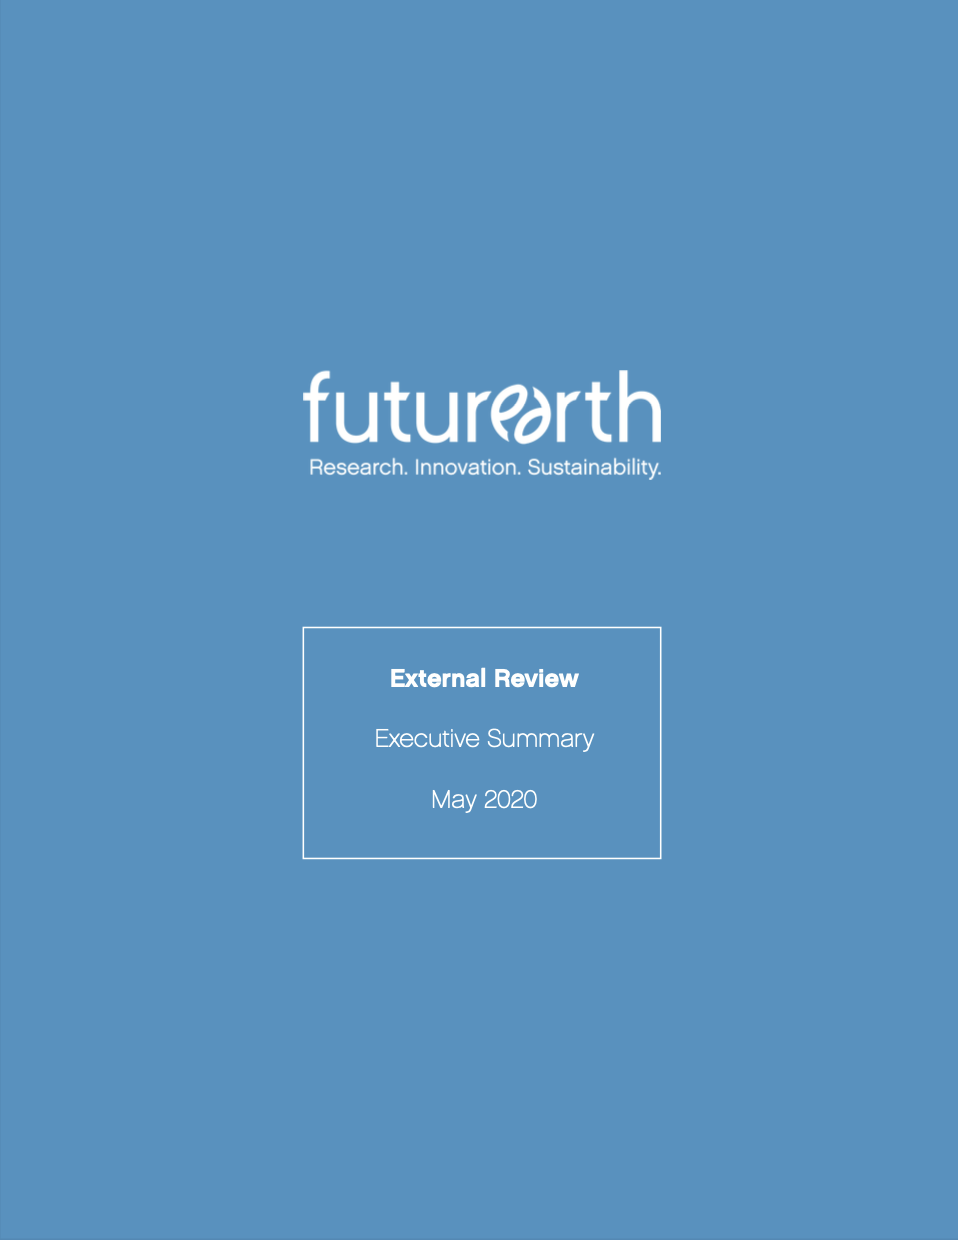 Future Earth External Review Executive Summary cover image